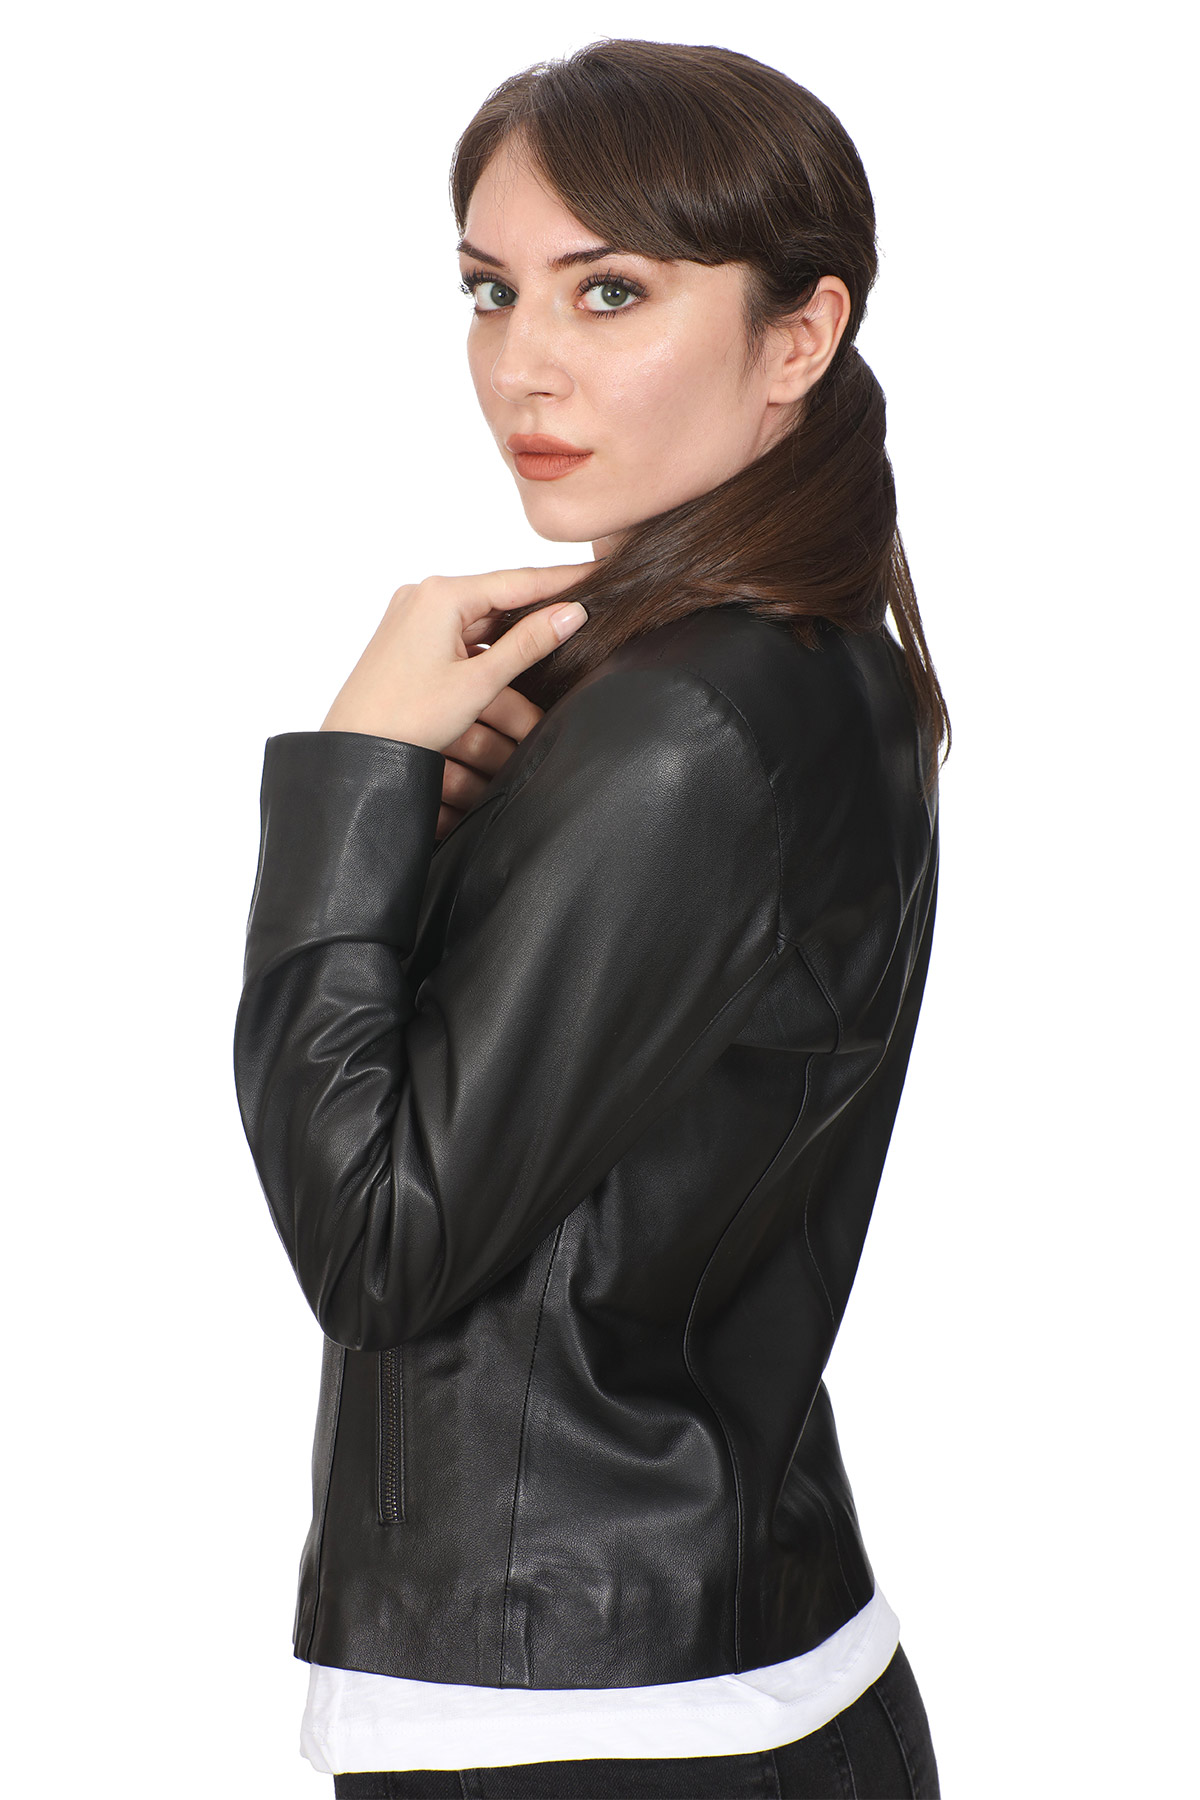 How Much Do Real Leather Jackets Cost